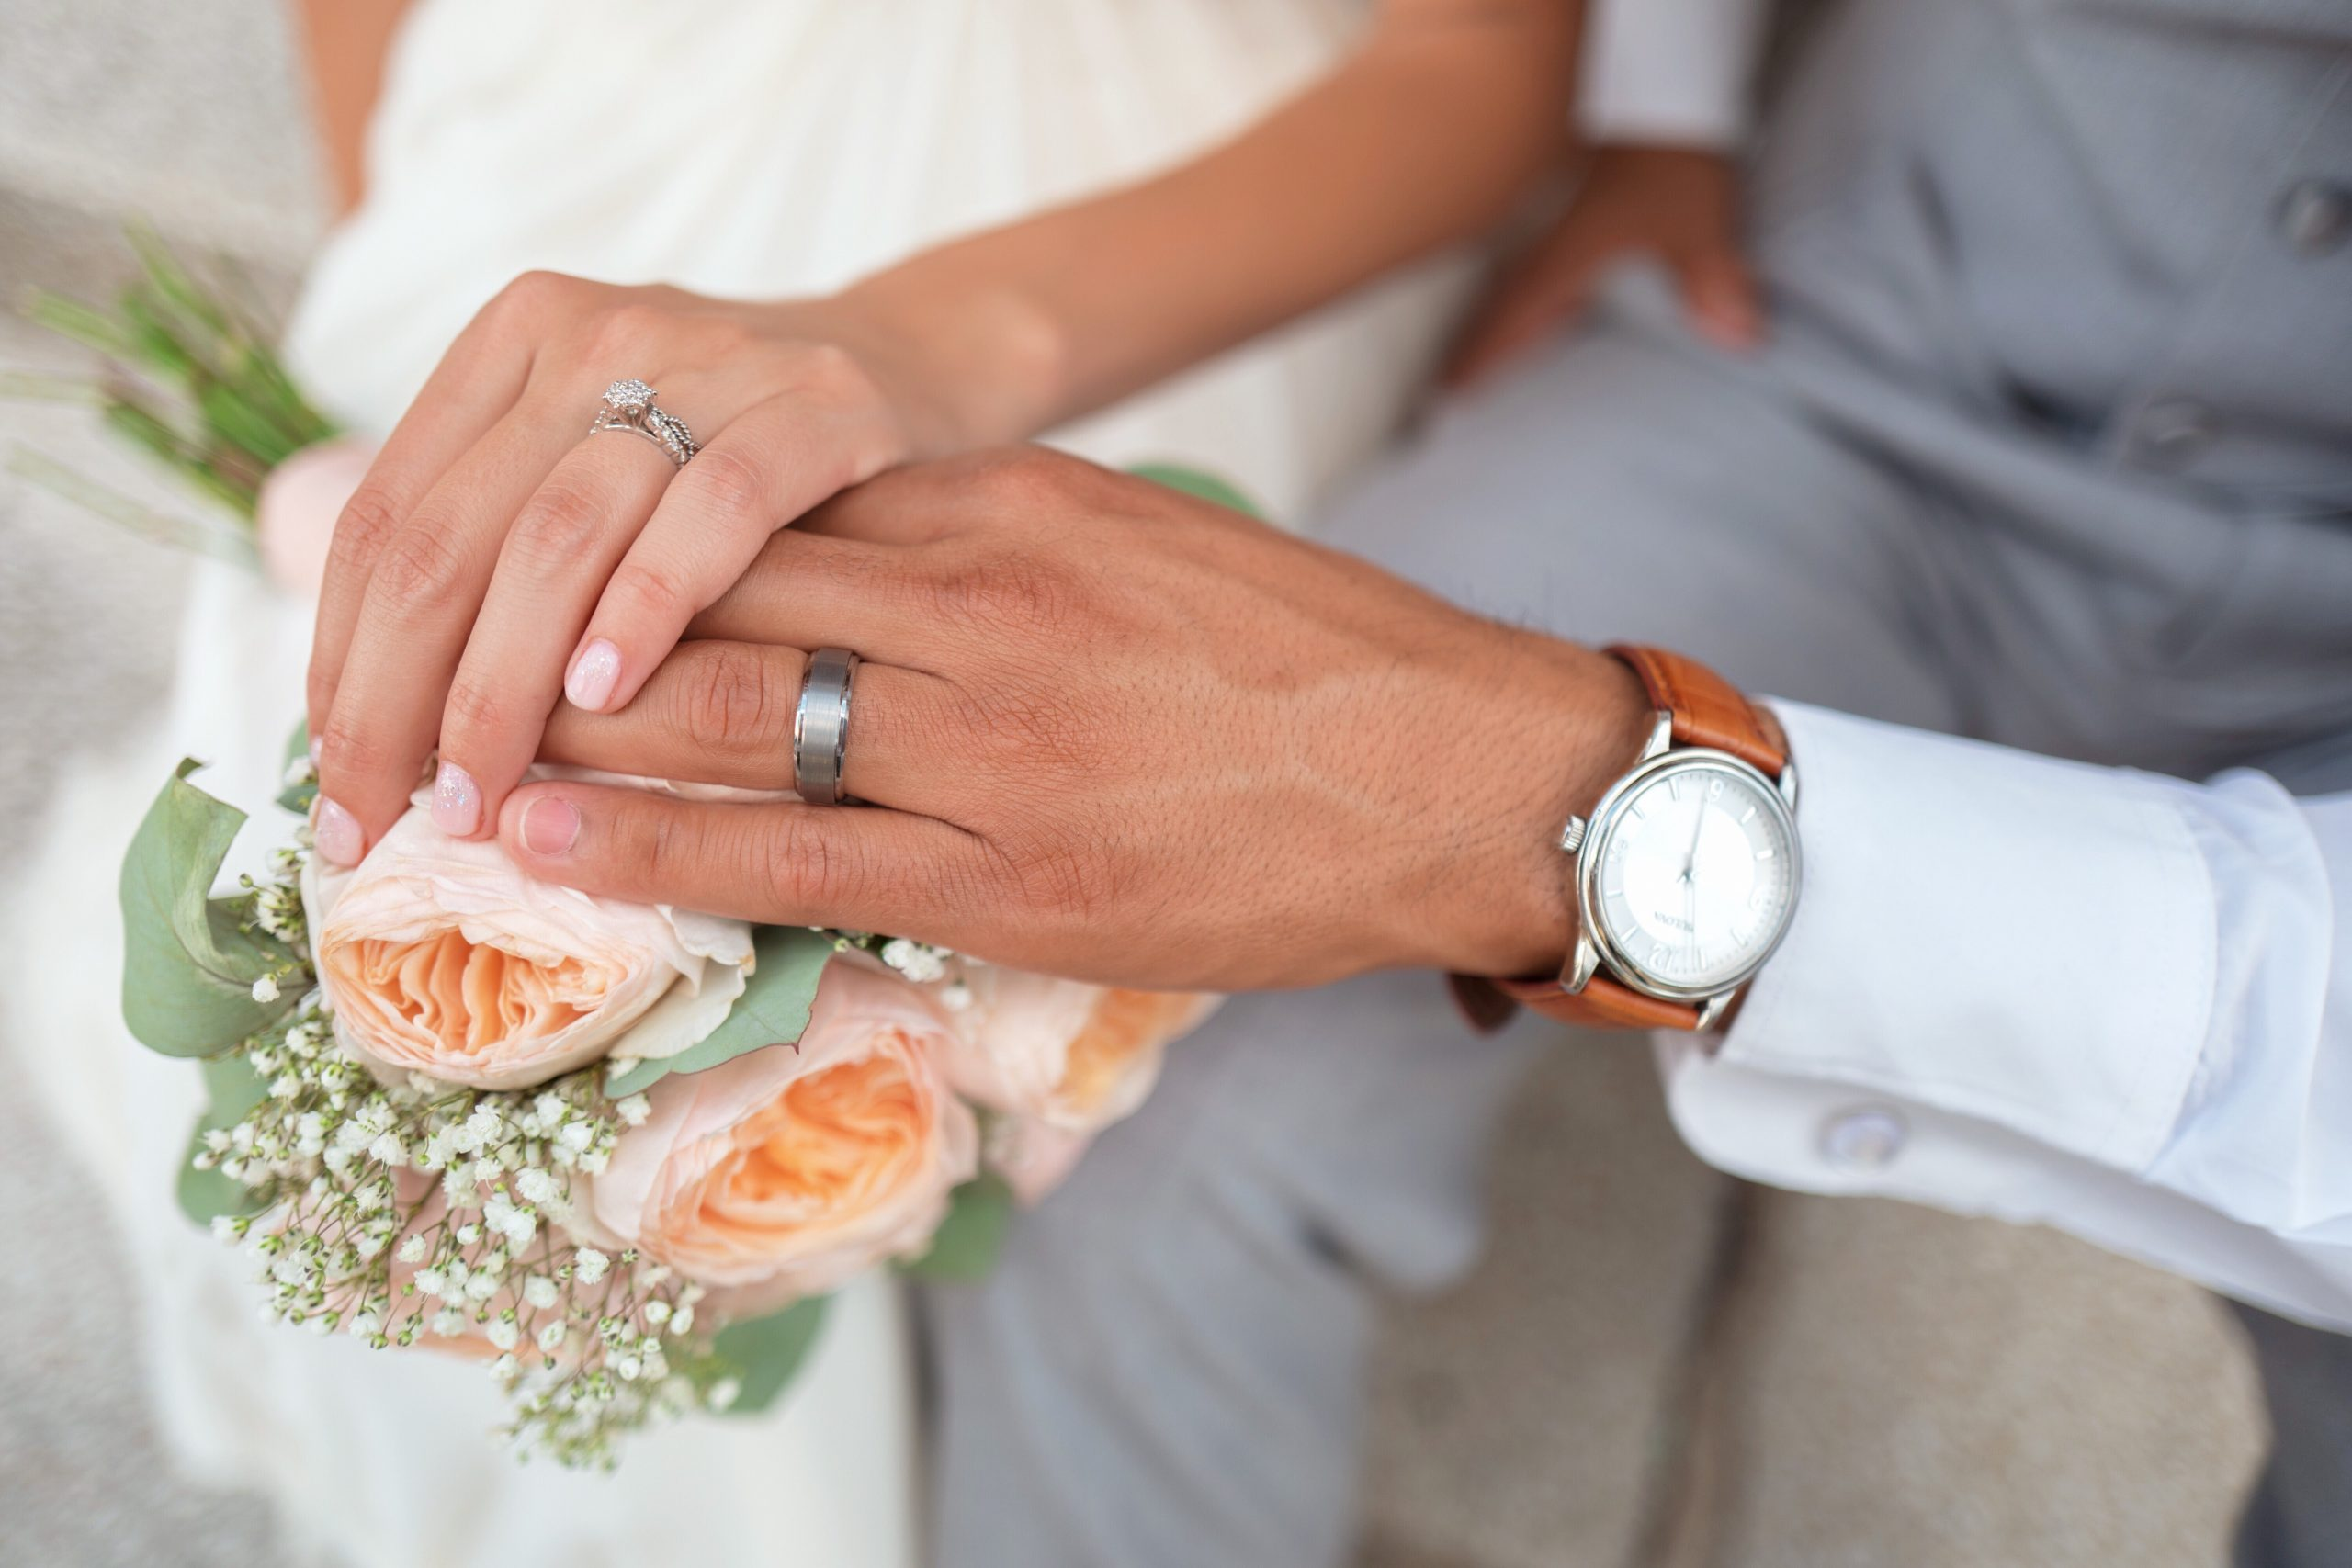 Top 10 Mistakes to Avoid on the Wedding Day